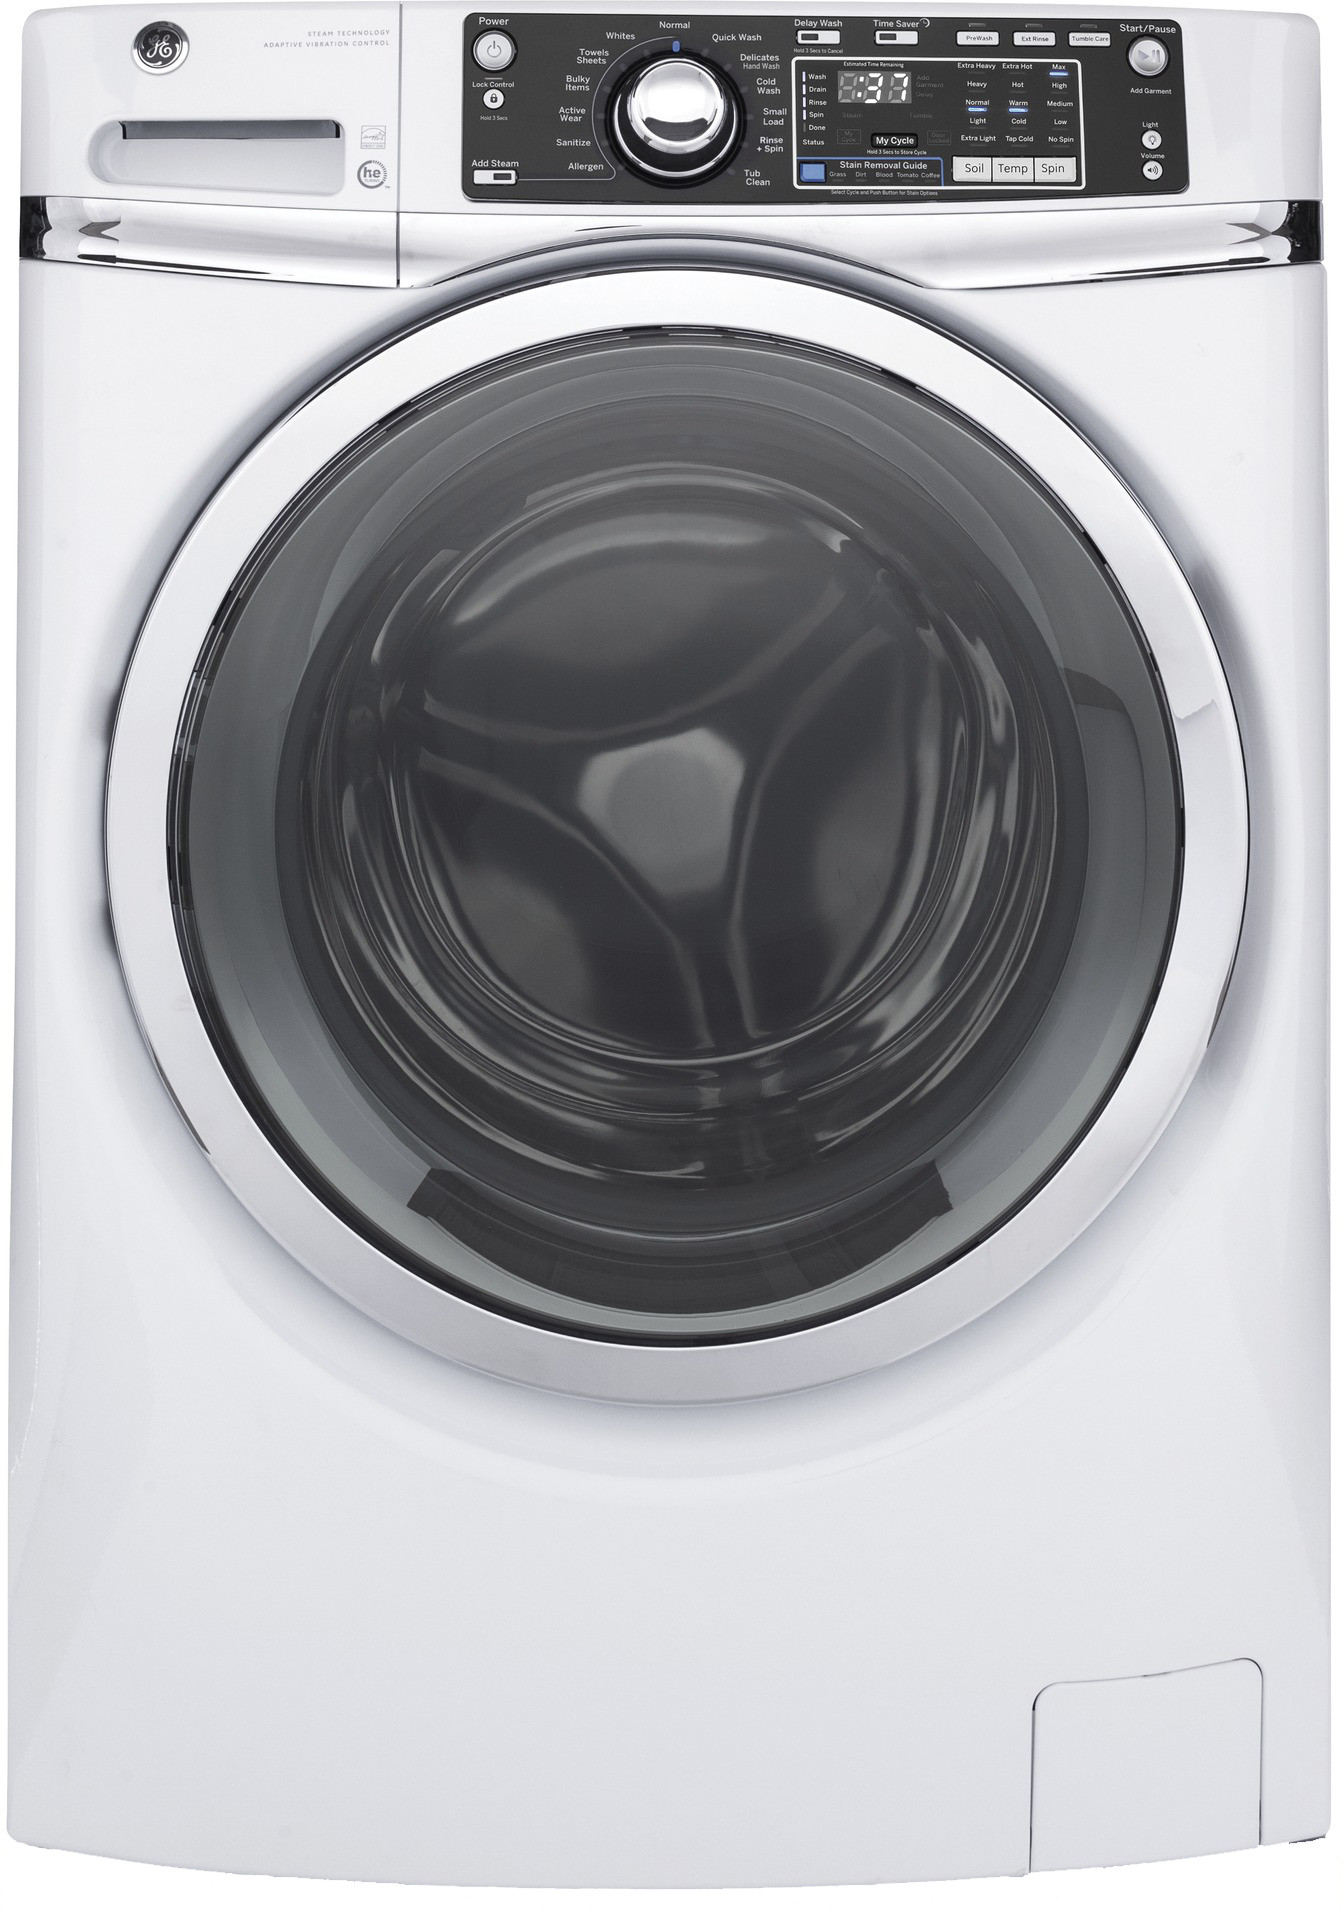 Ge Gfw480sskww 28 Inch Front Load Washer With 4 9 Cu Ft